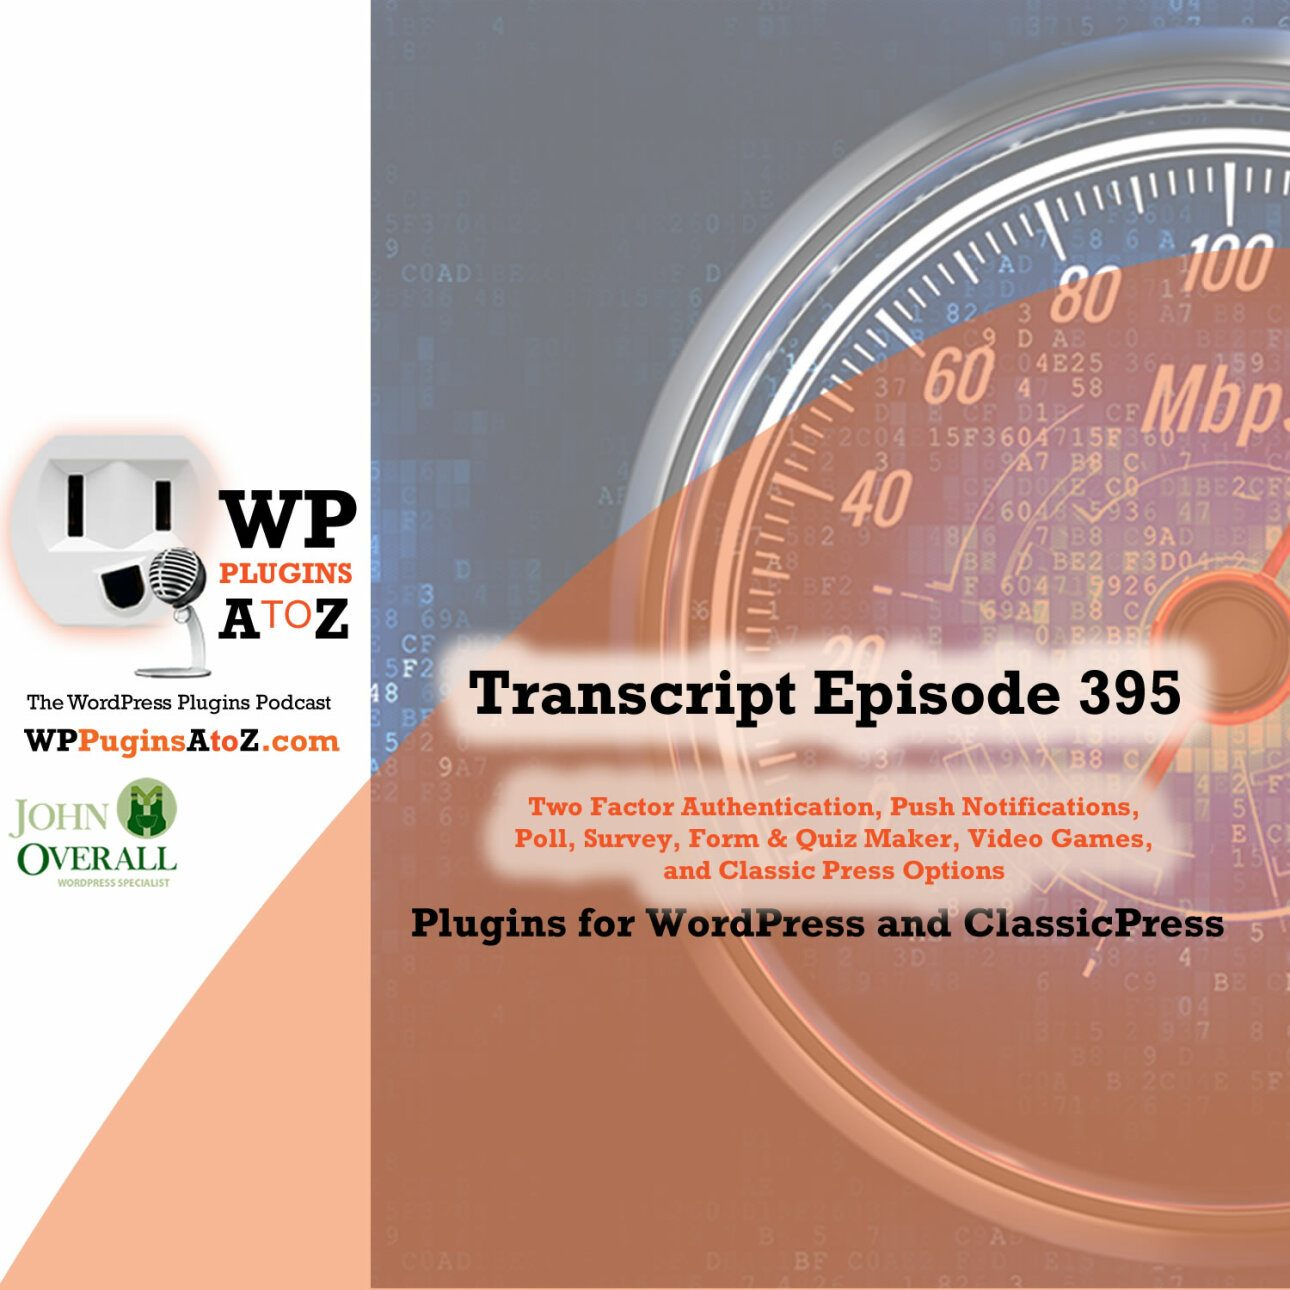 It's Episode 395 and I've got plugins for Two Factor Authentication, Push Notifications, Polls, Surveys & Quizzes, WordPress Game List, and ClassicPress. It's all coming up on WordPress Plugins A-Z!